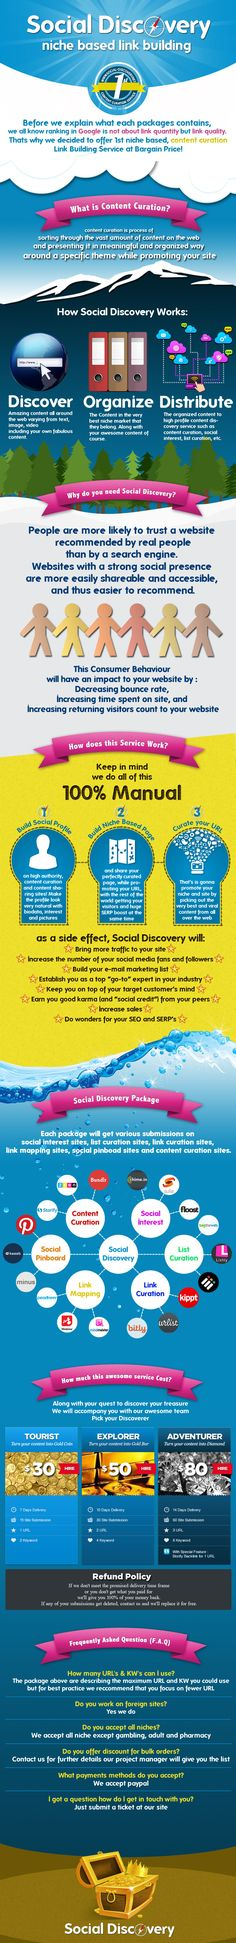 Social Discovery: Niche Based Link Building